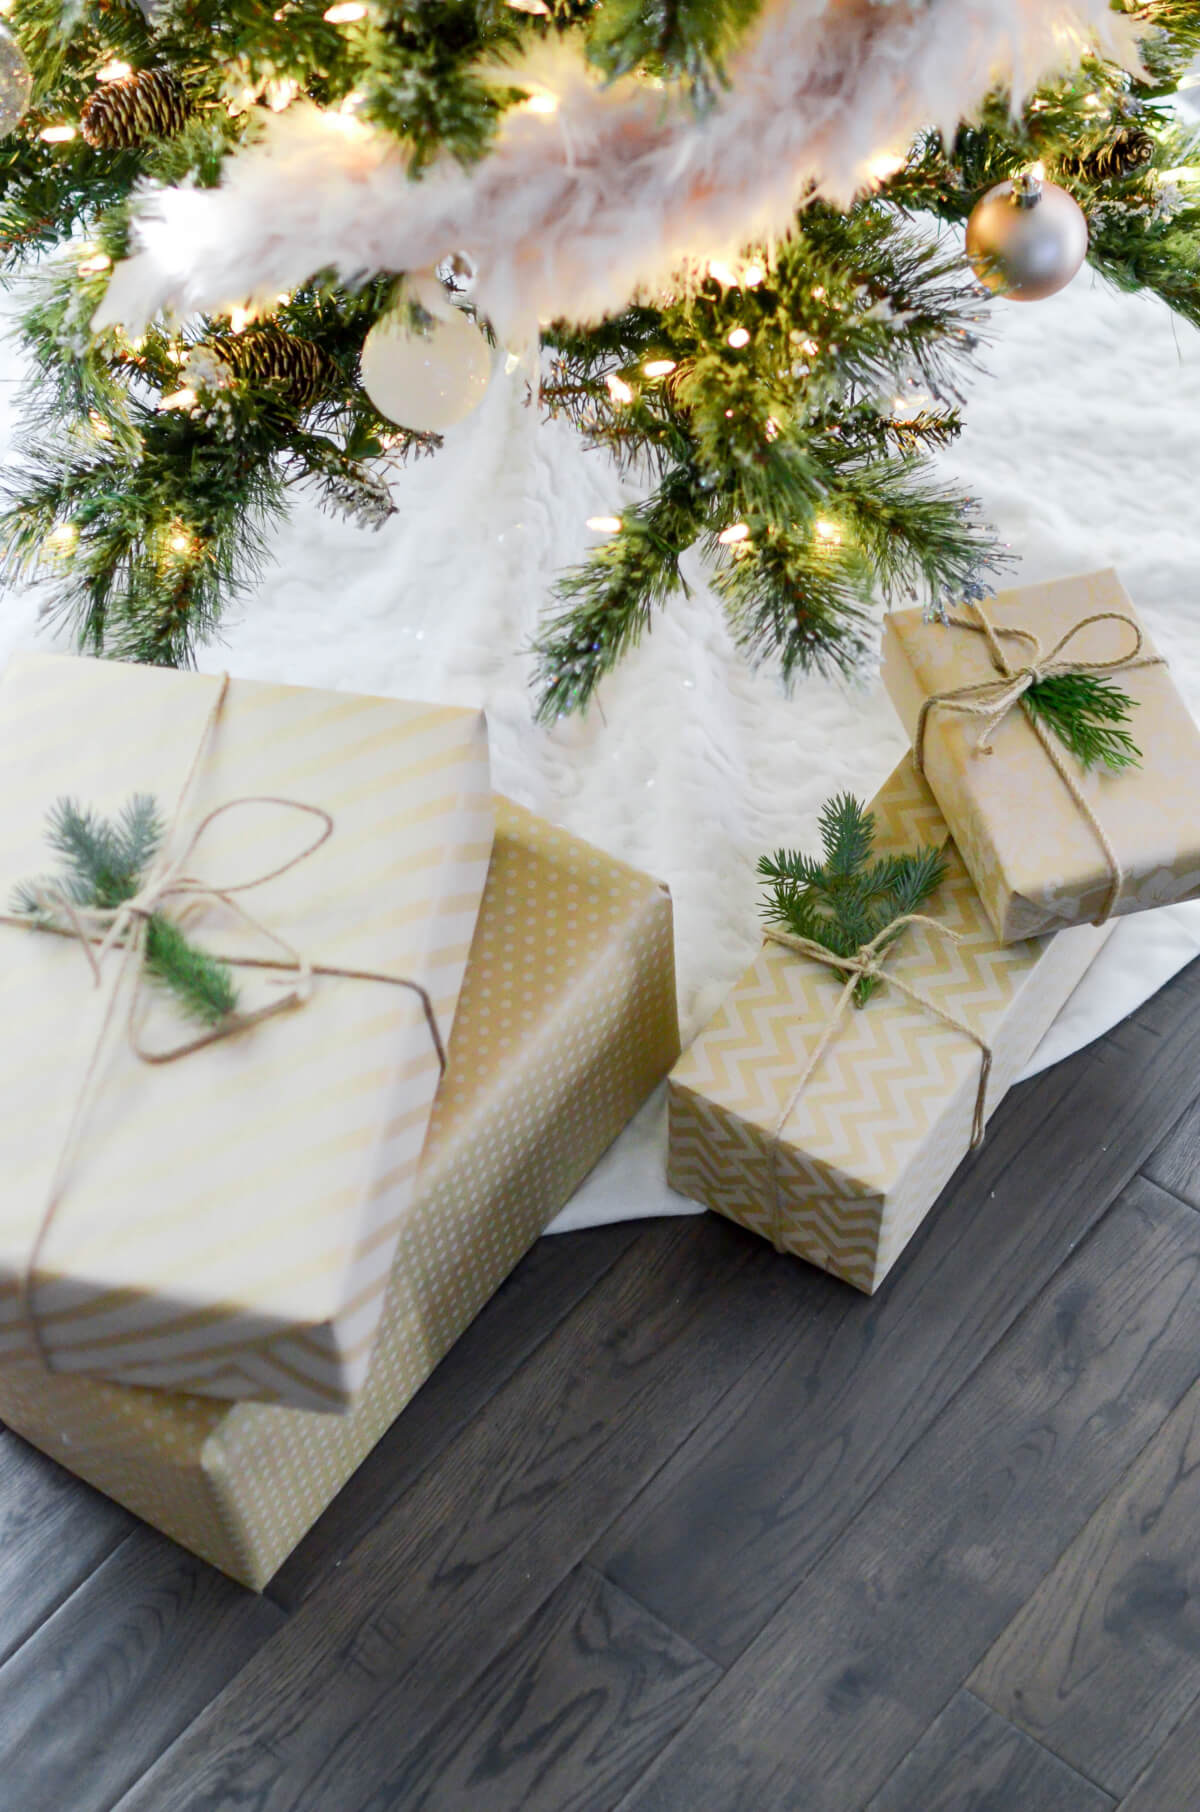 Christmas Planning - Choosing a Special Gift to Spark an Interest - Christmas gifts under a tree